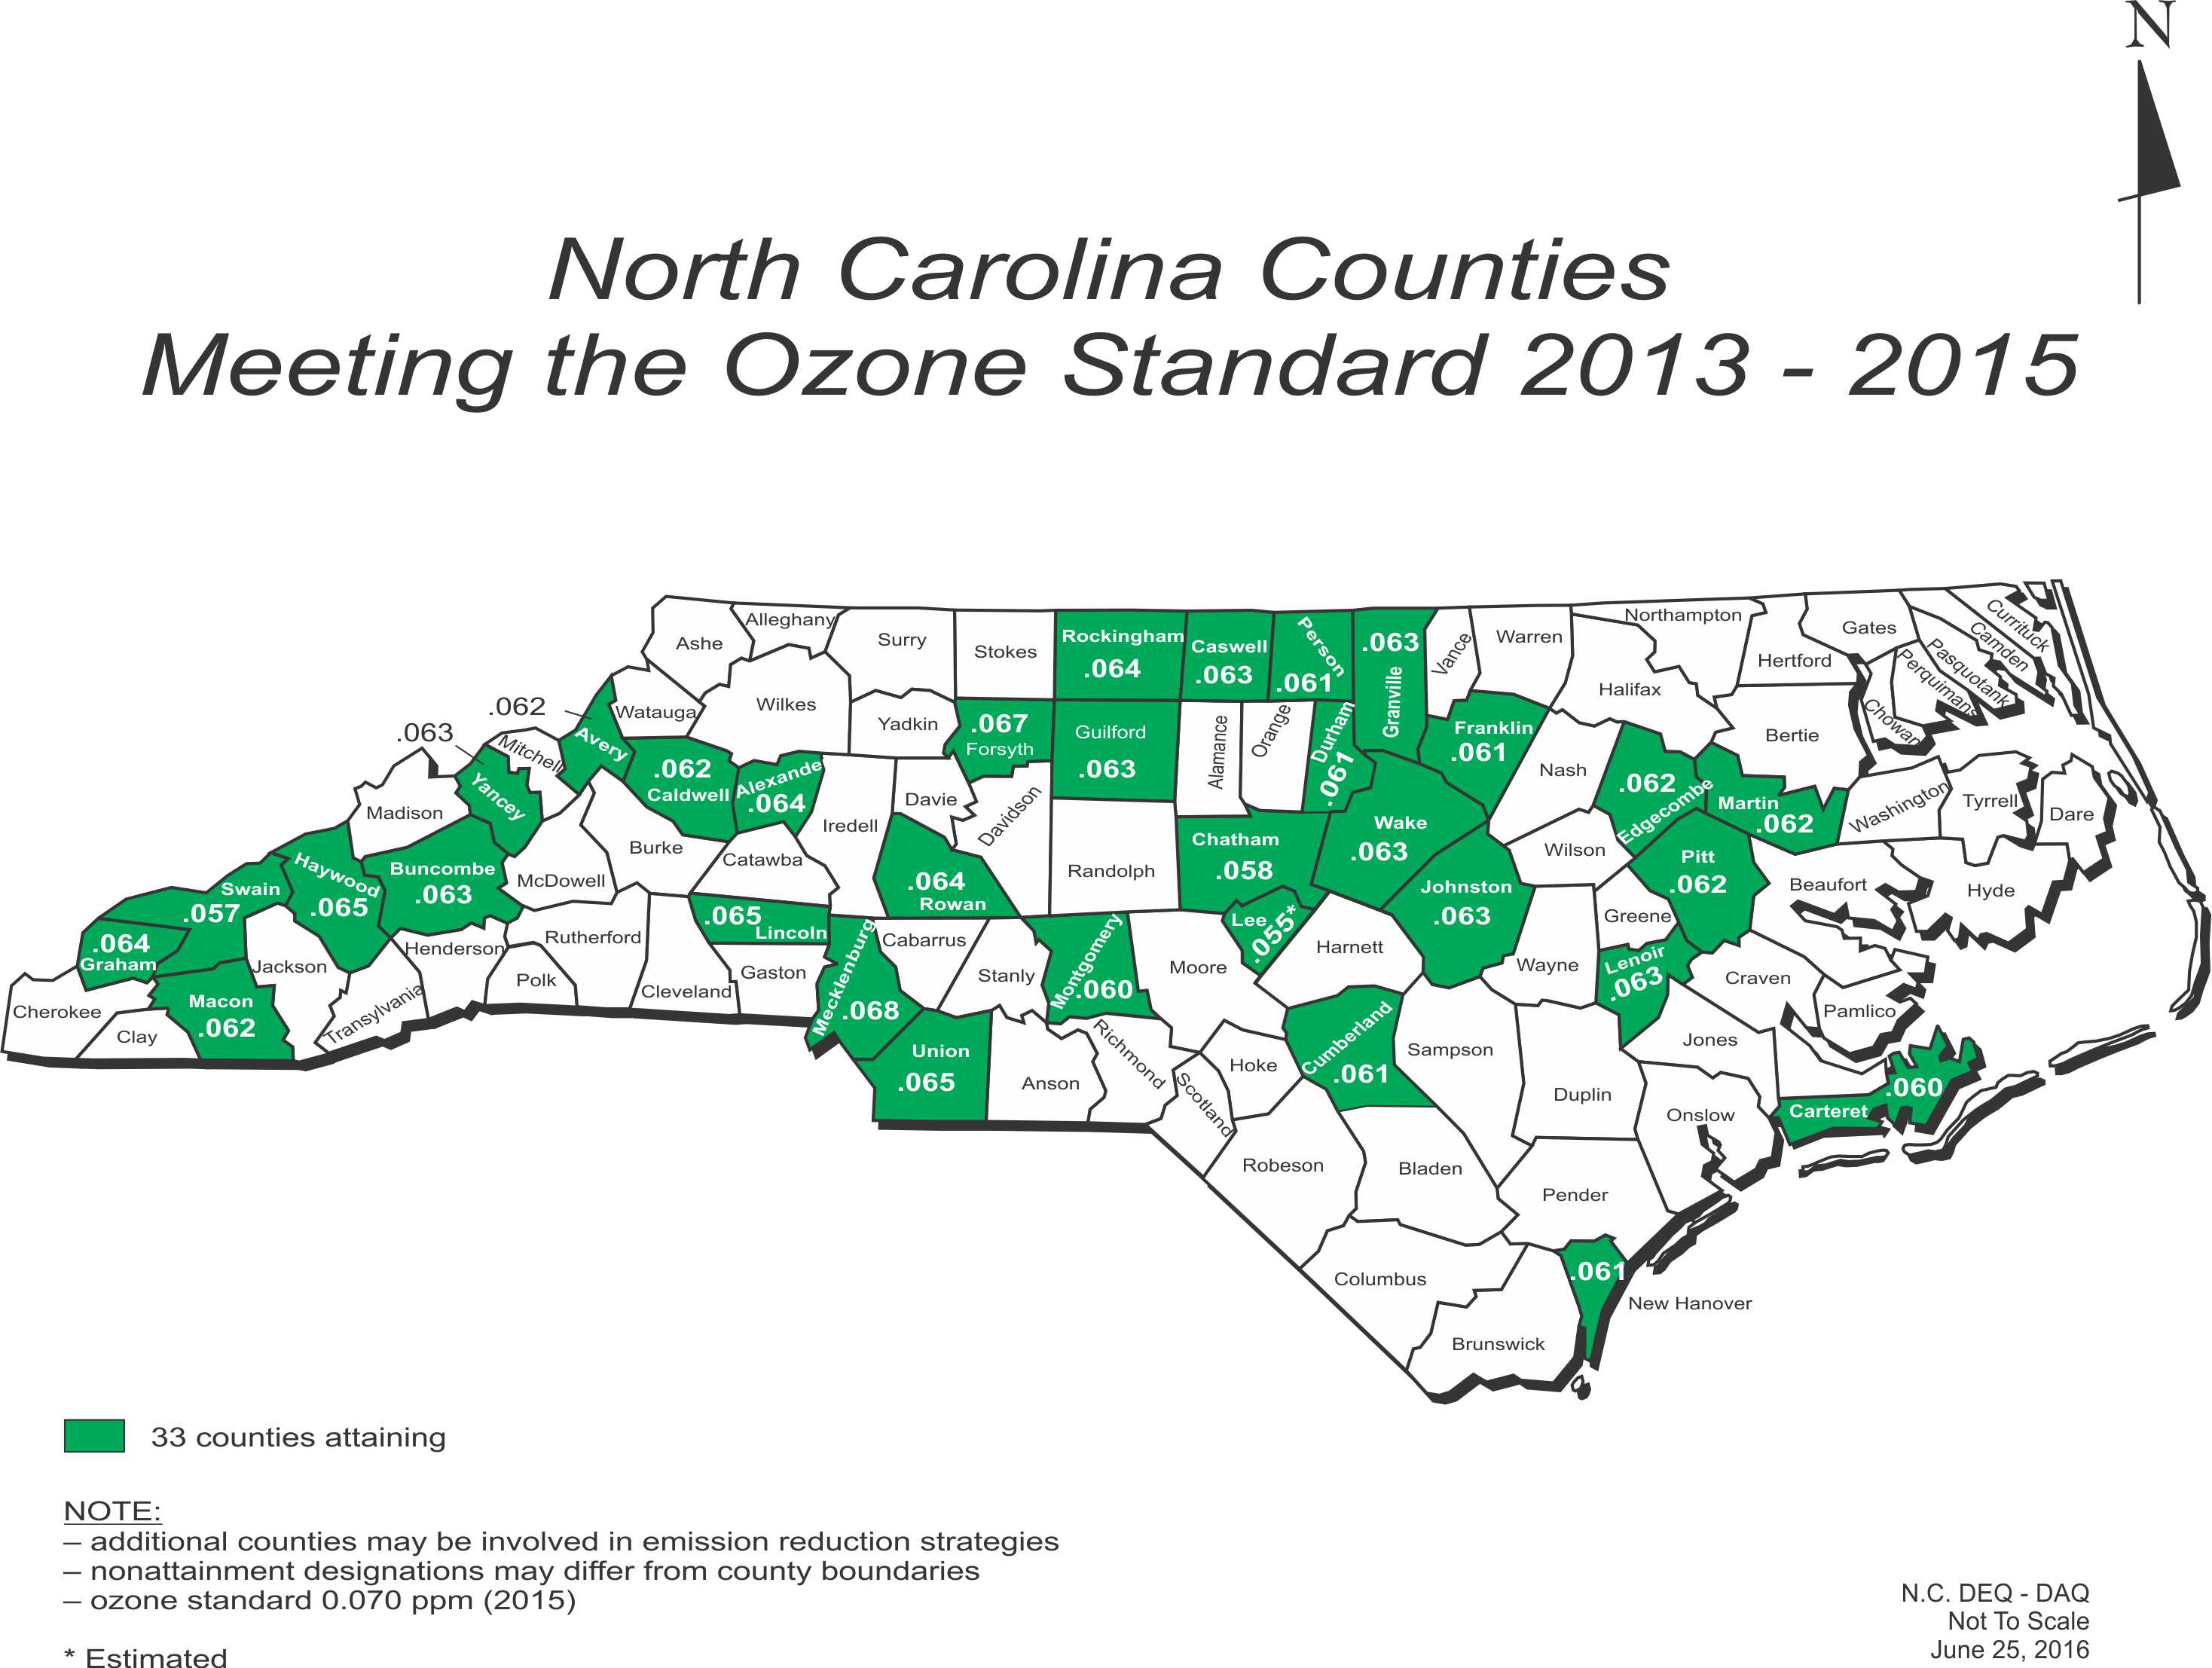 NC Counties Meeting the Ozone Standard: 2013-2015